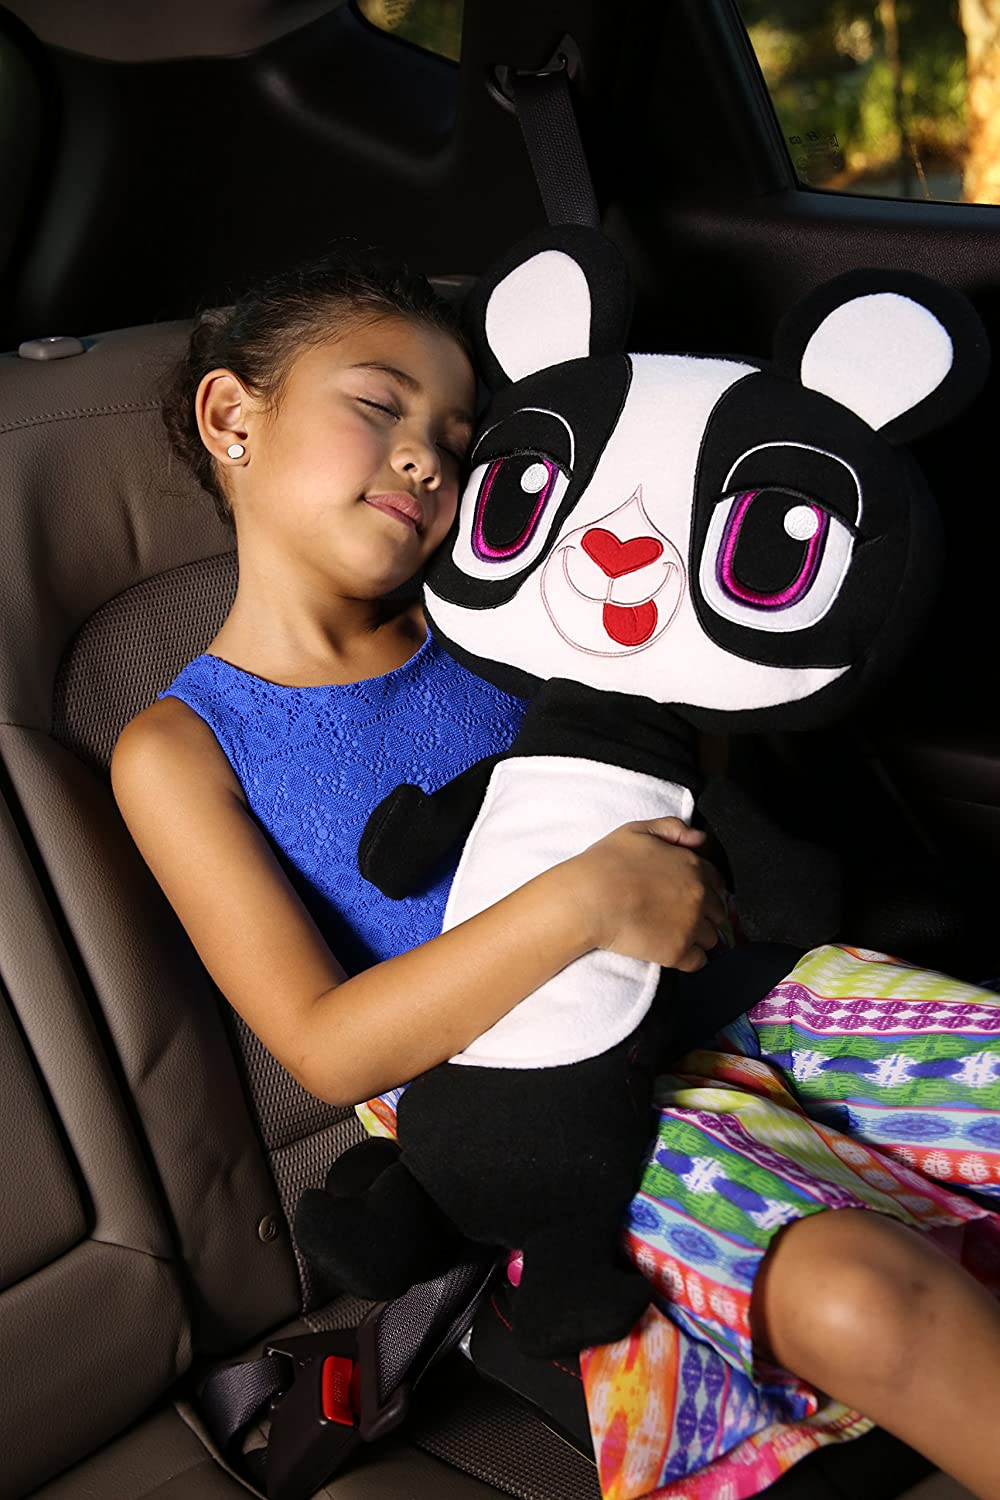 Seat Pets Panda by Jay at Play /– As Seen on TV - Kids Seat Belt Car Travel Pillow and Plush Animal Toy /– Compatible with Any Safety Belt to Provide Head /& Neck Support